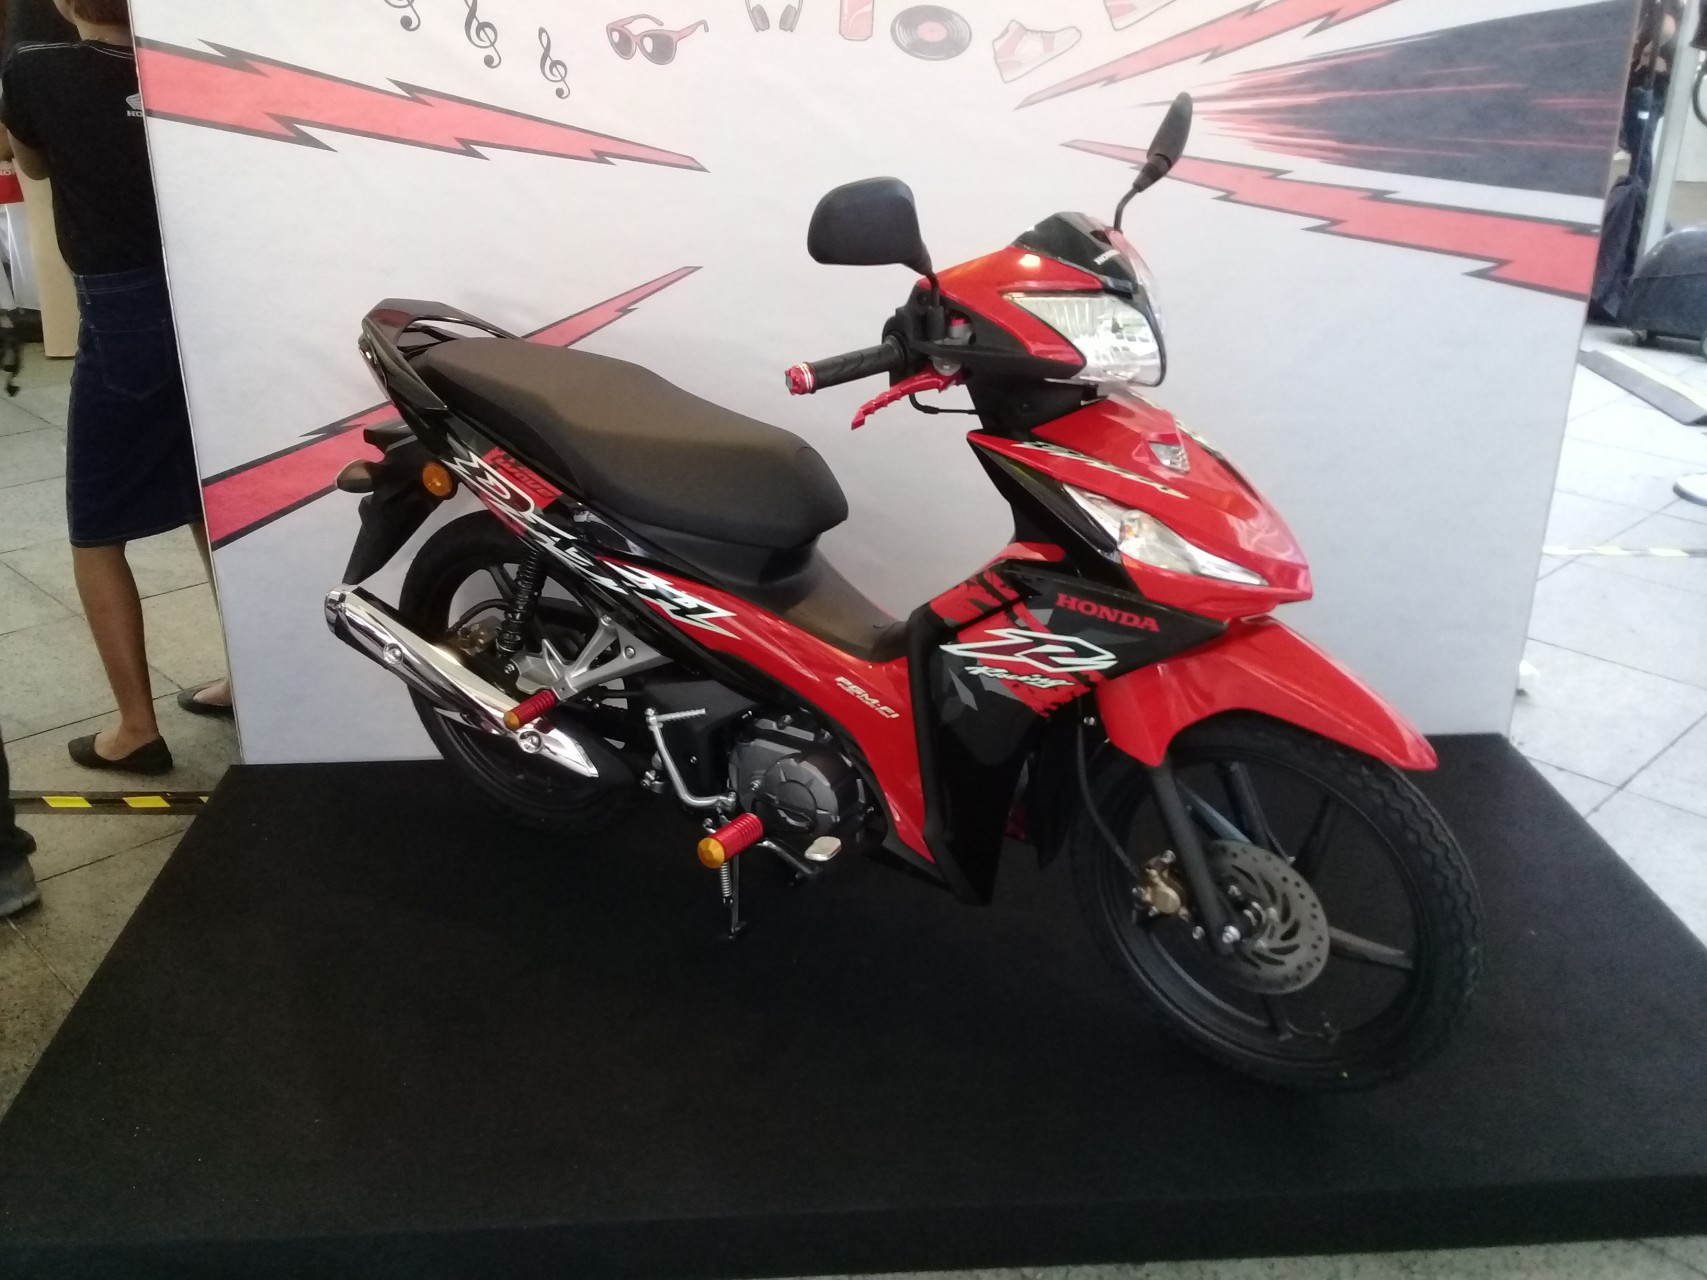 hight resolution of available in three colours the wave dash fi is priced at rm5 860 s type rm6 178 r type and rm6 337 repsol edition all come with a 2 year 20 000km